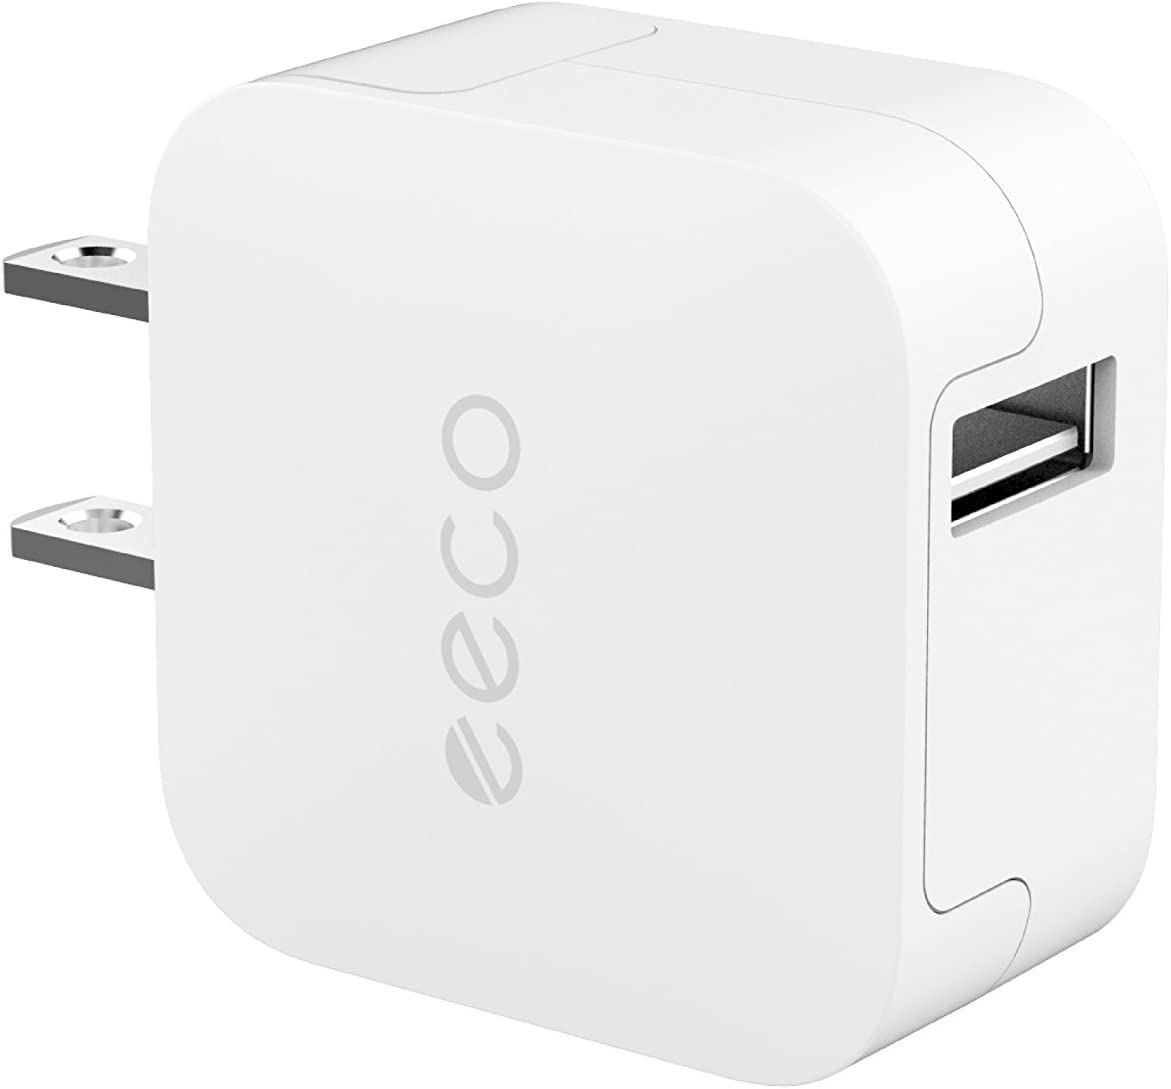 eeco Mini USB Wall Charger 12W 2.4A, Travel Wall Charger with SmartIC Fast Charging and Universal Compatibility for iPhone X, iPhone 8/7/6s/6s Plus, iPad Air/Pro/Mini, Samsung, HTC and More (White)